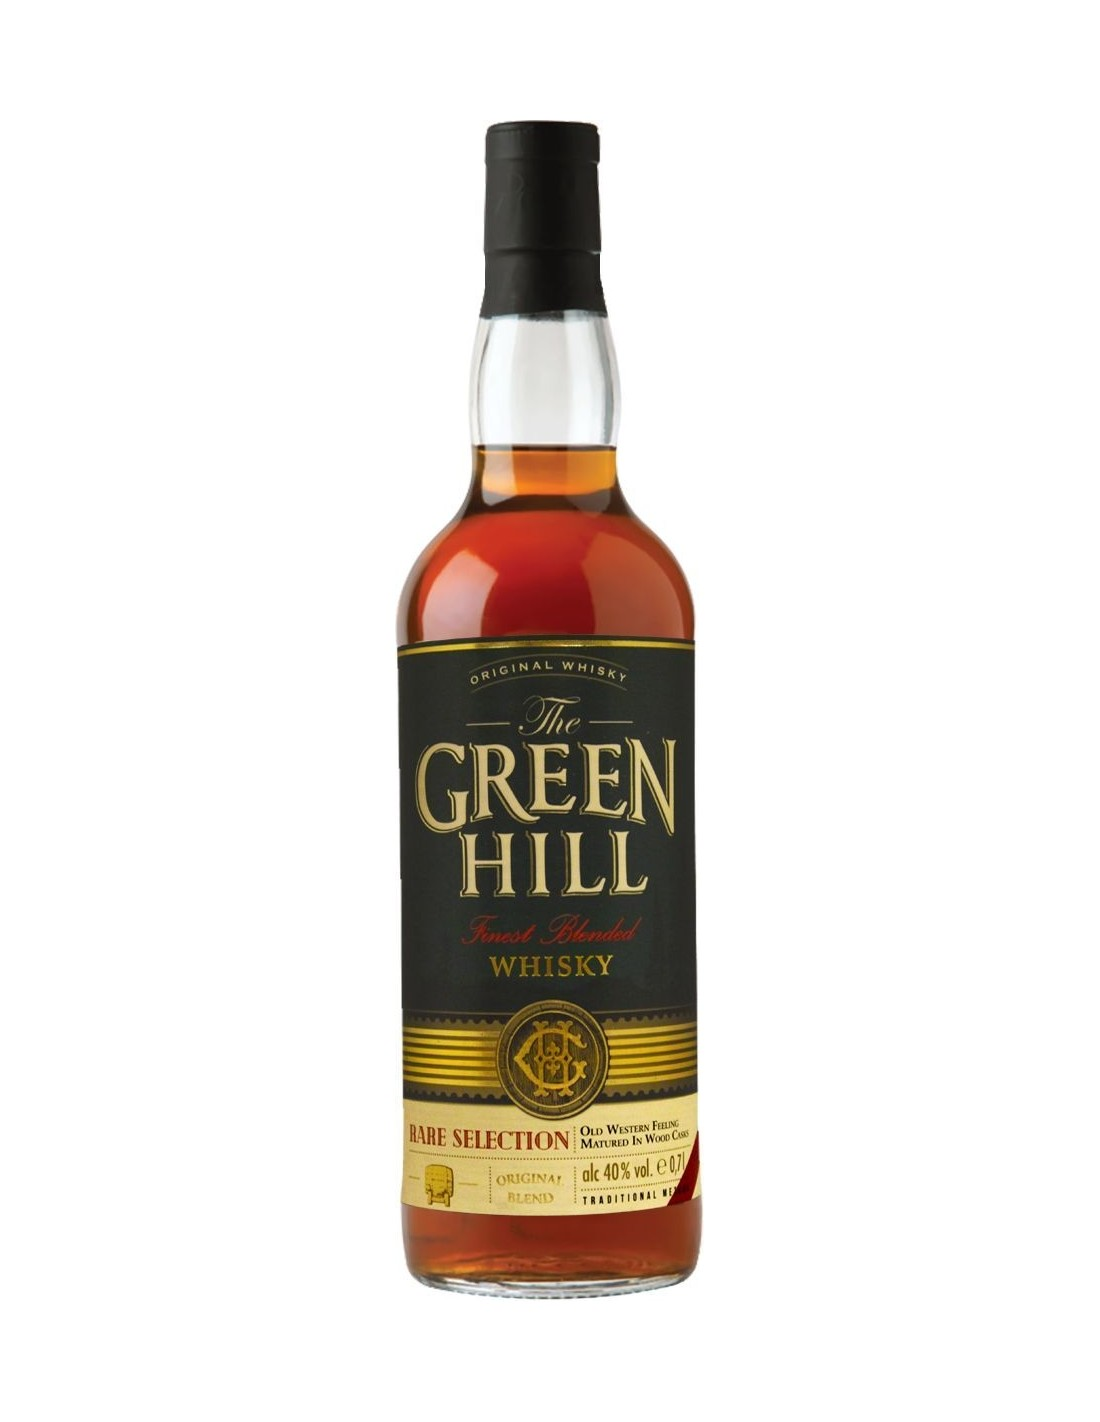 Whisky Green Hill, 40% alc., 0.7L, Germania